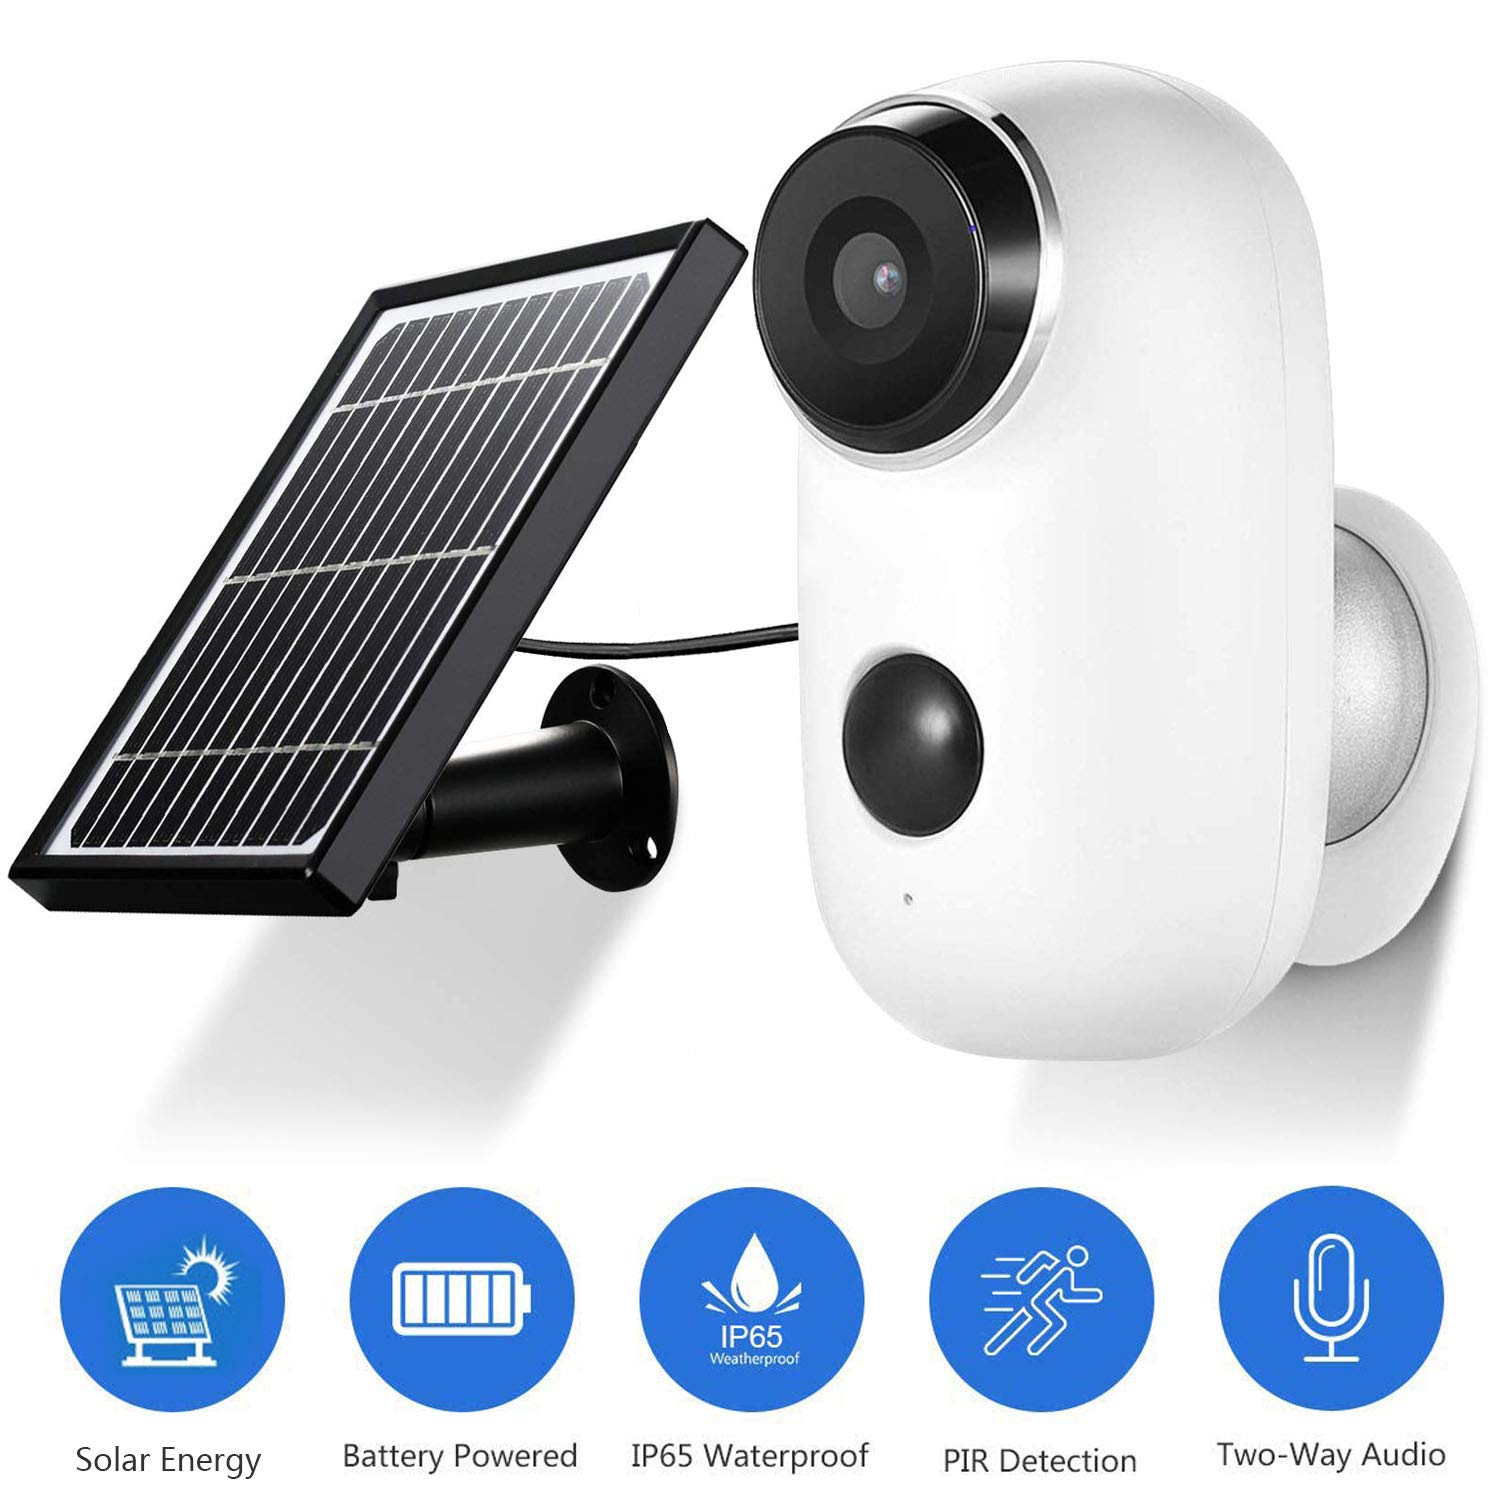 Wireless Solar Powered Security Camera 1080P Abowone Rechargeable Battery Powered Camera 2.0MP WiFi Camera Wire-Free Waterproof Indoor/Outdoor Two-Way Audio PIR Sensor/Body Detection HD Night Vision by Abowone